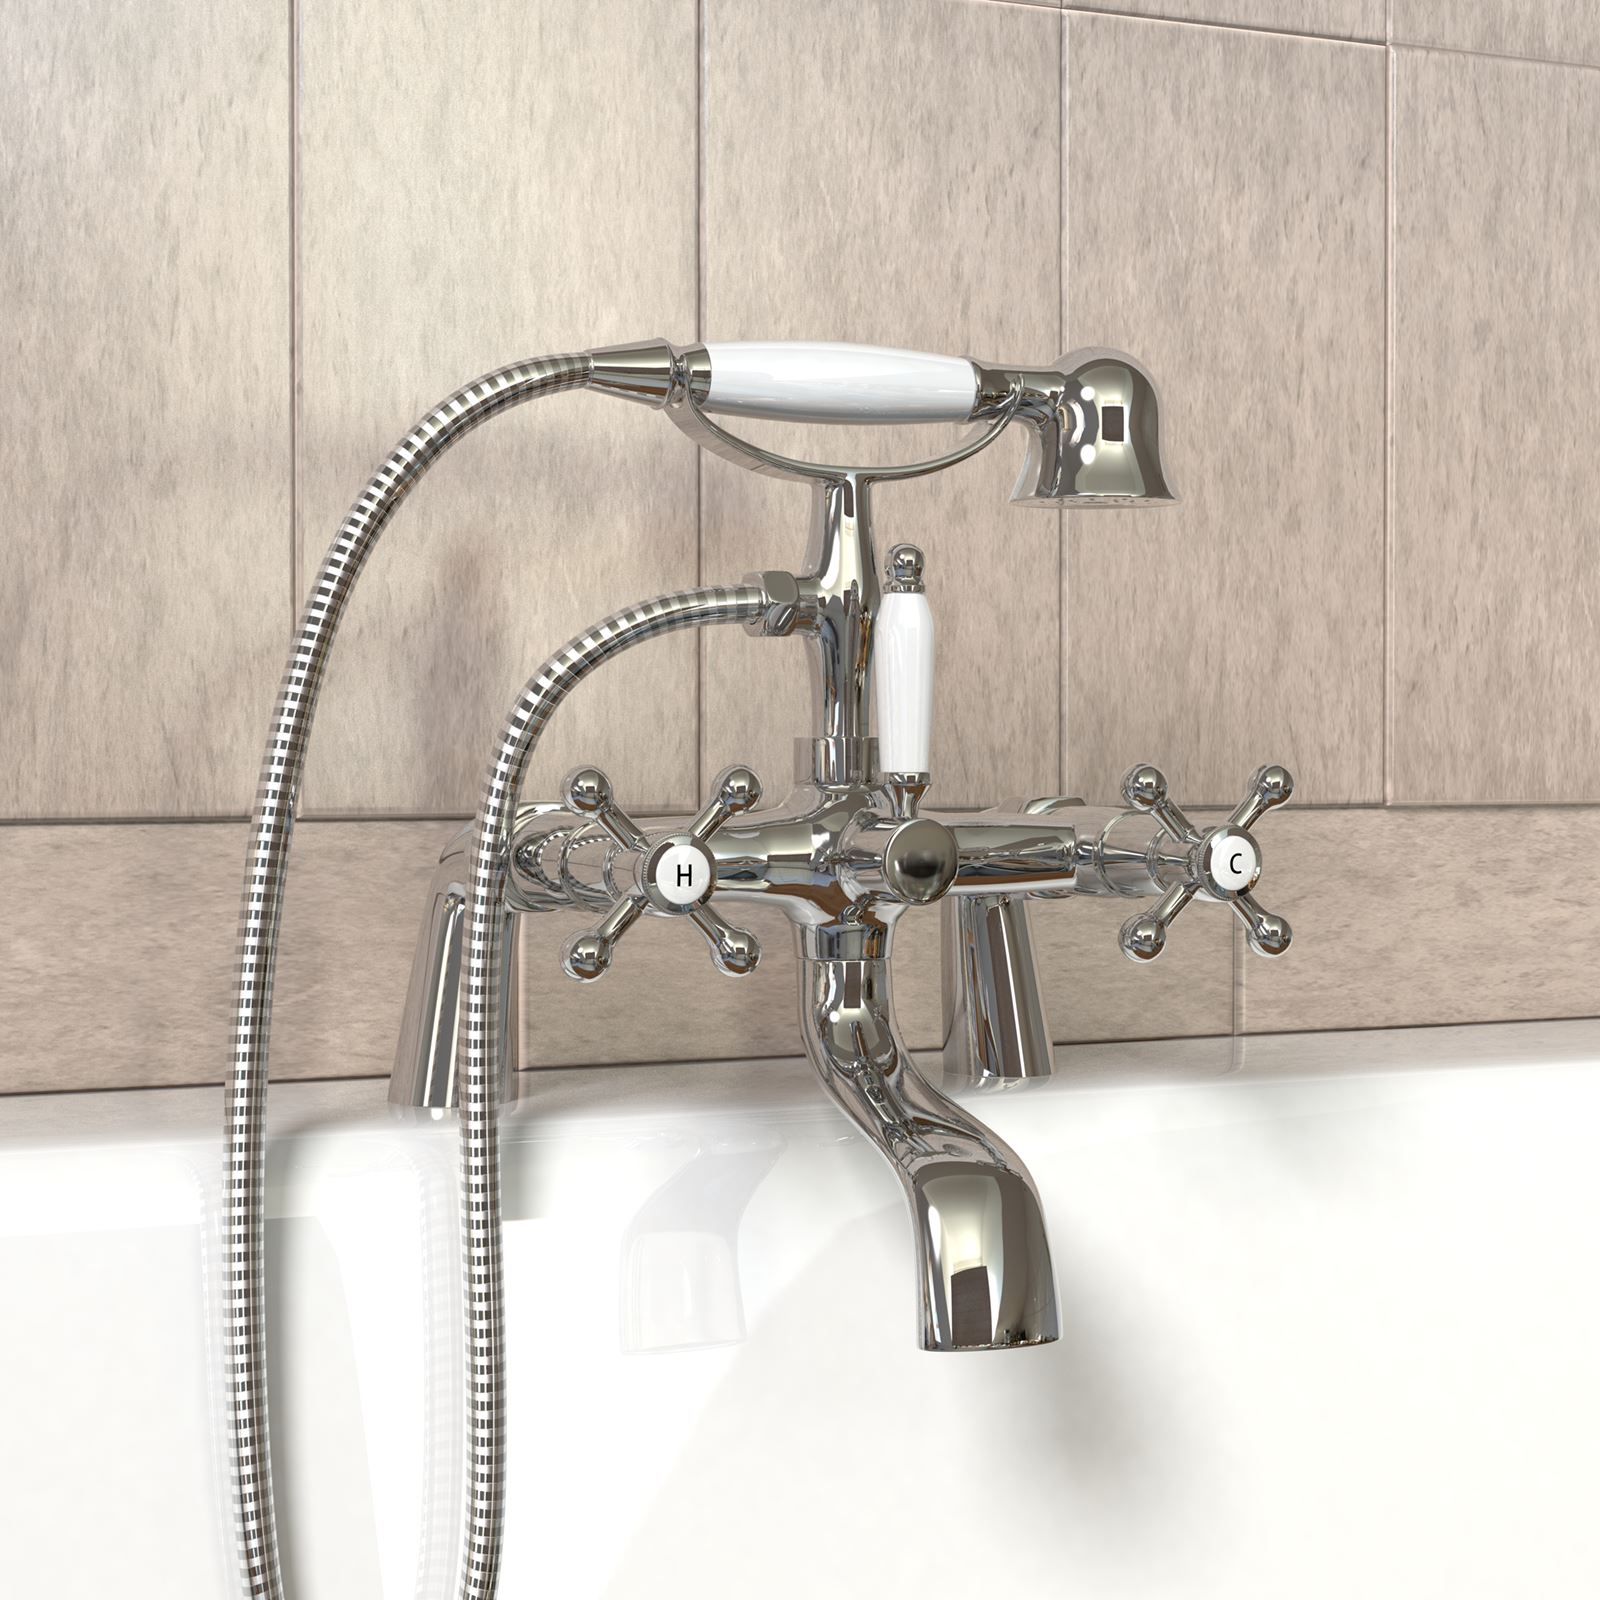 Shower attachments for bath tapswilko functional bath for Bathroom taps adelaide